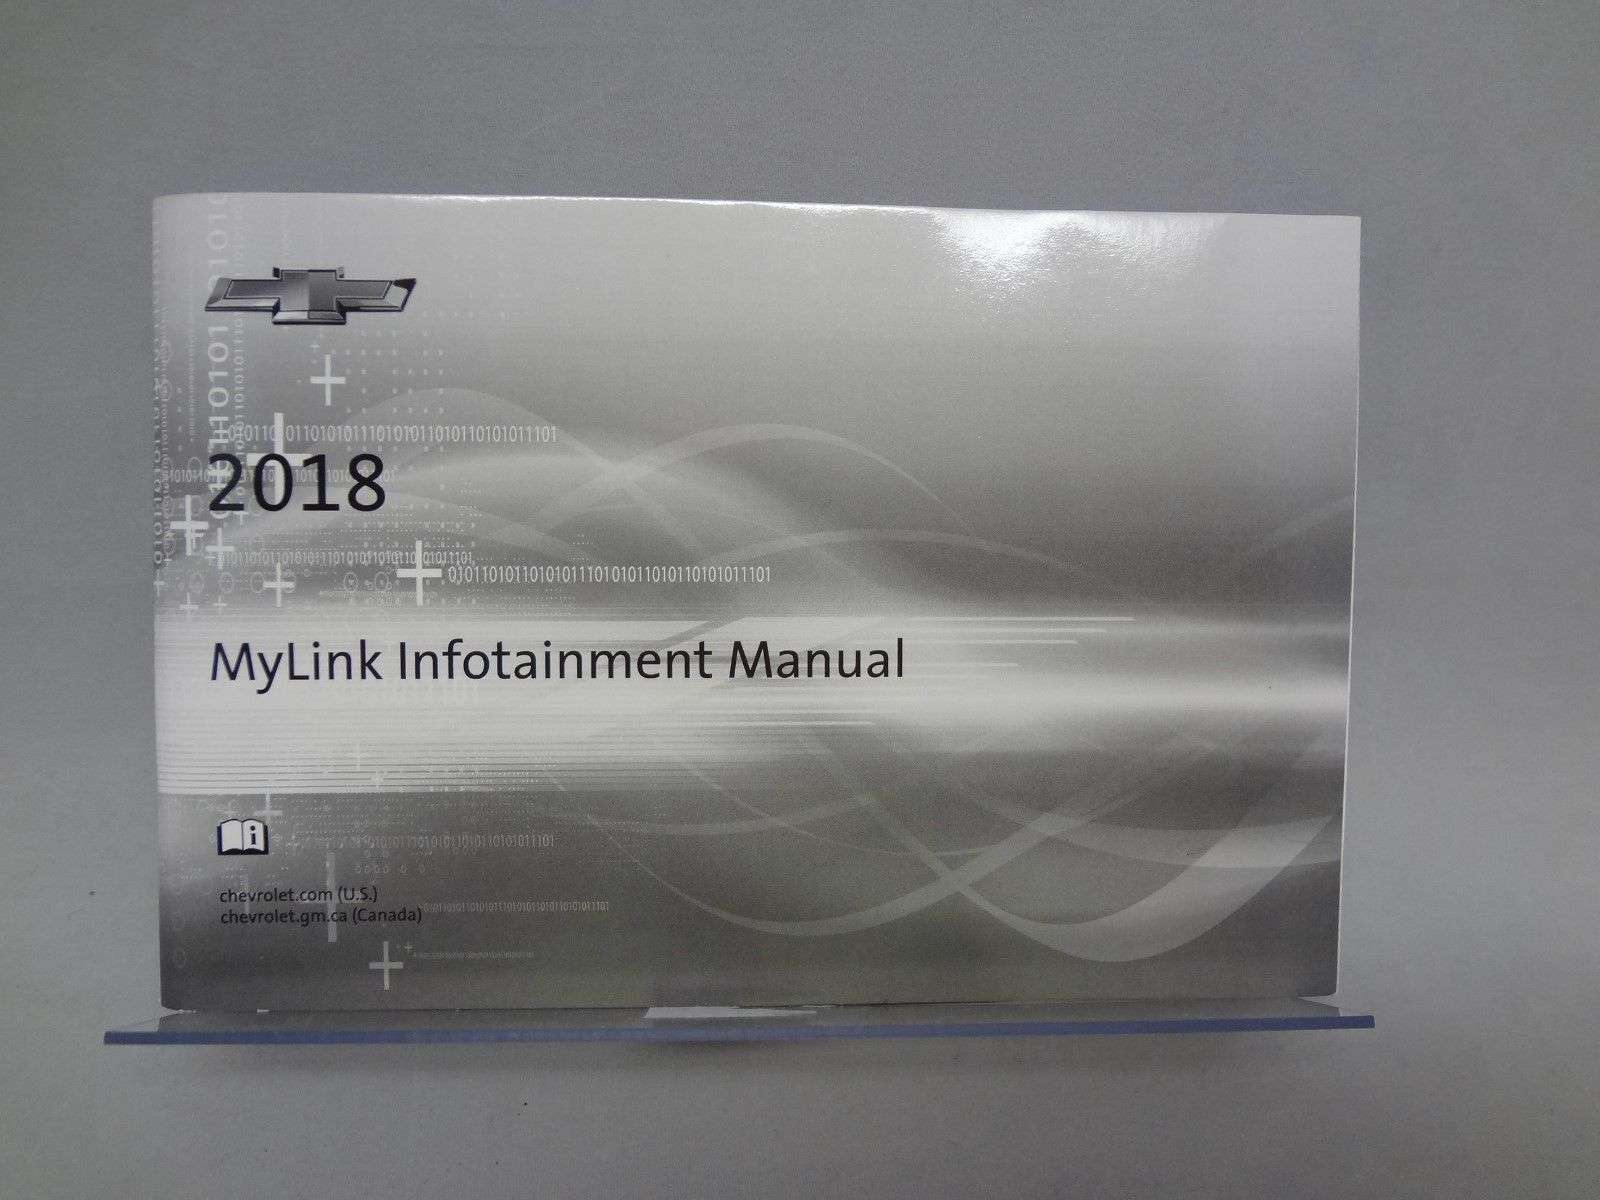 2018 Chevrolet Volt Mylink Infotainment System Manual